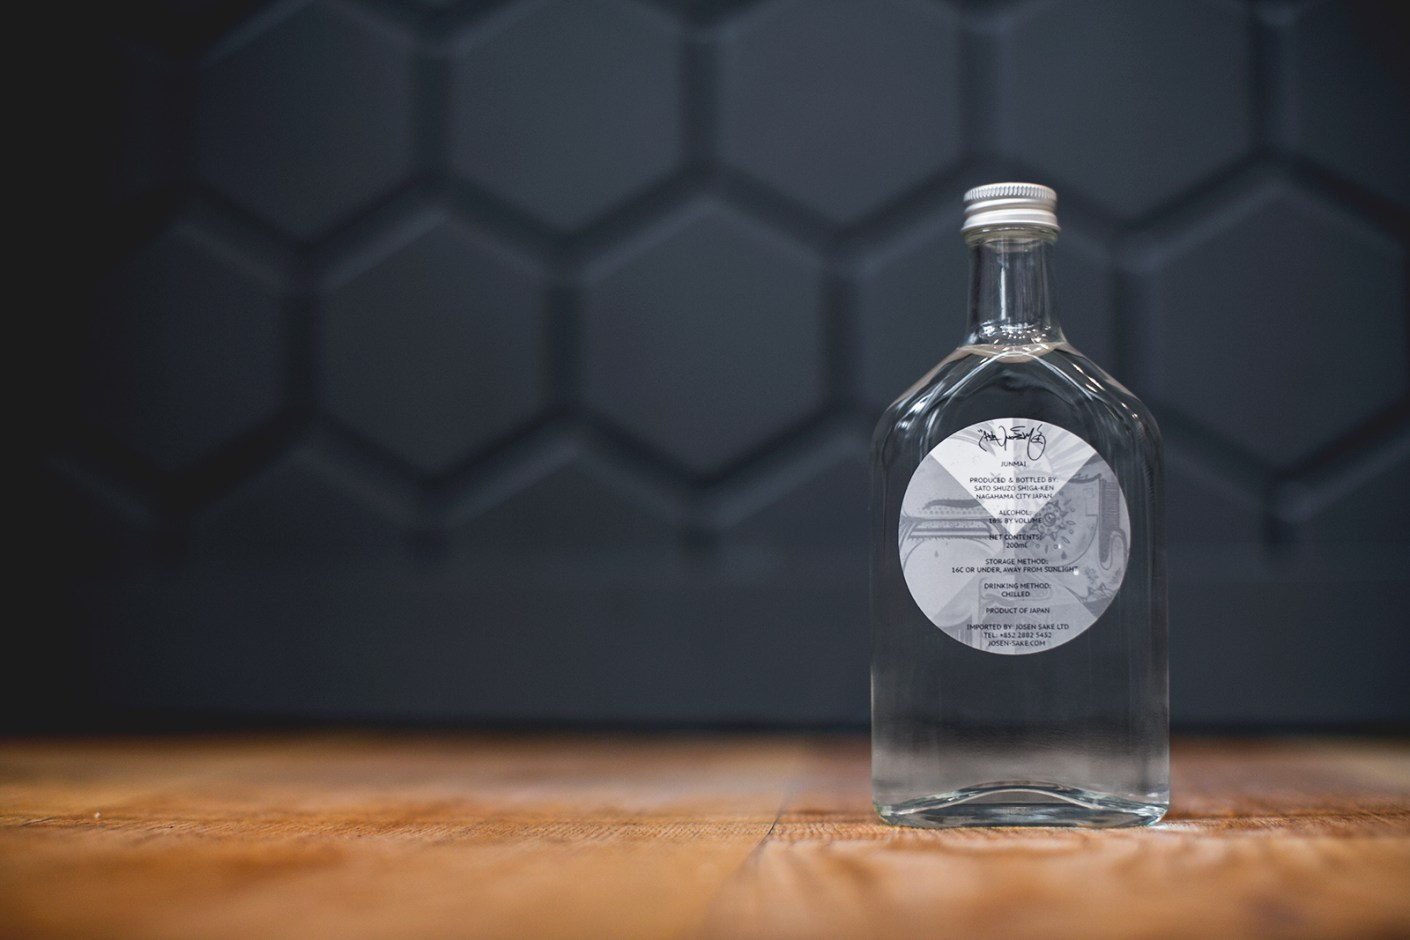 Image of How and Nosm x Yardbird Limited Edition Sake Bottle